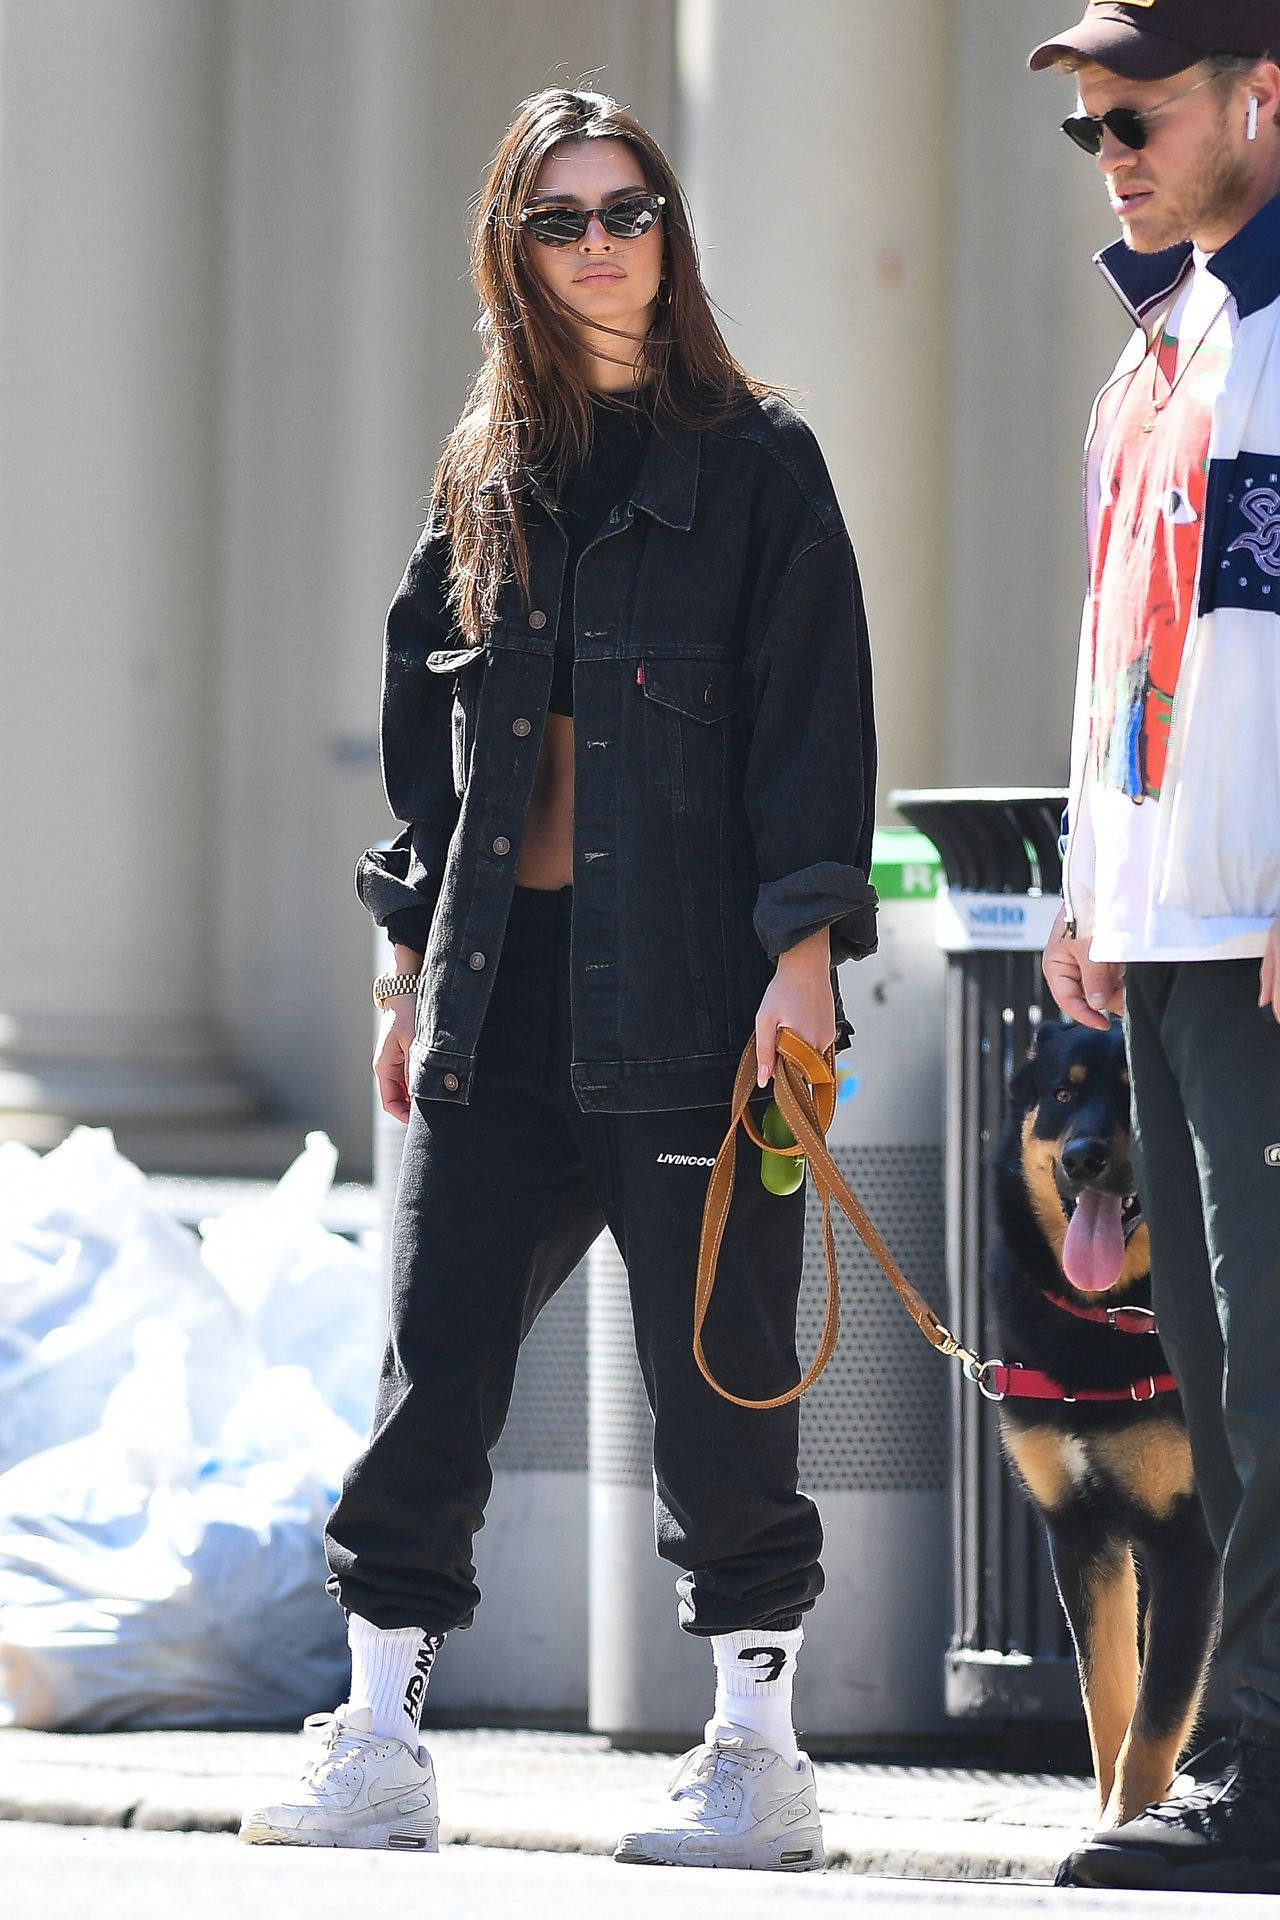 Emily Ratajkowski Walks With Her Dog Colombo In Nyc 0030